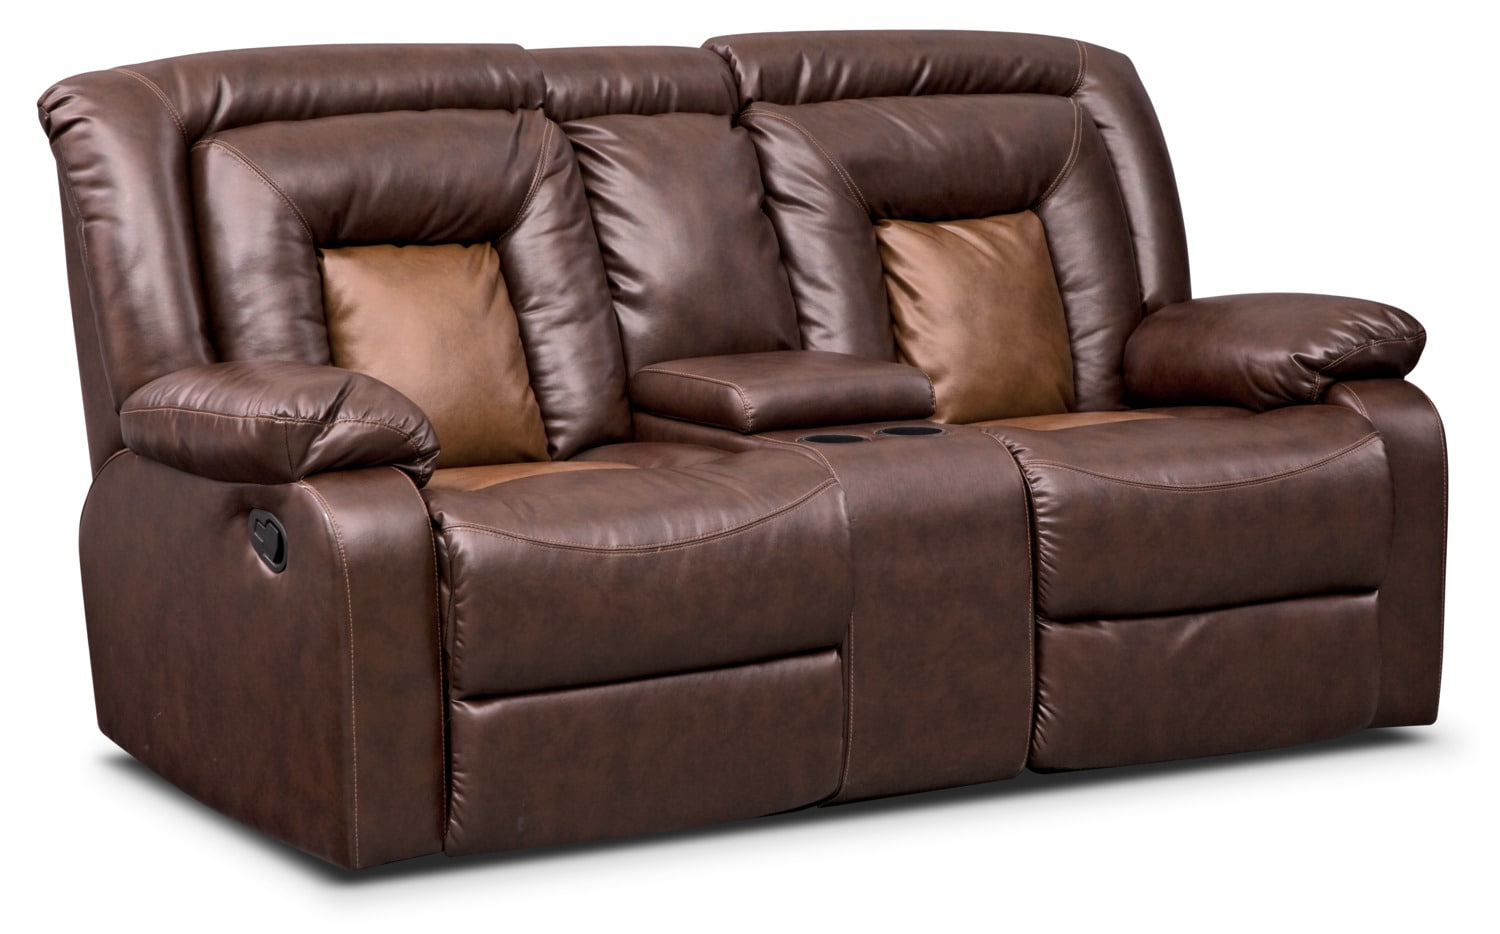 Mustang Dual Reclining Loveseat With Console